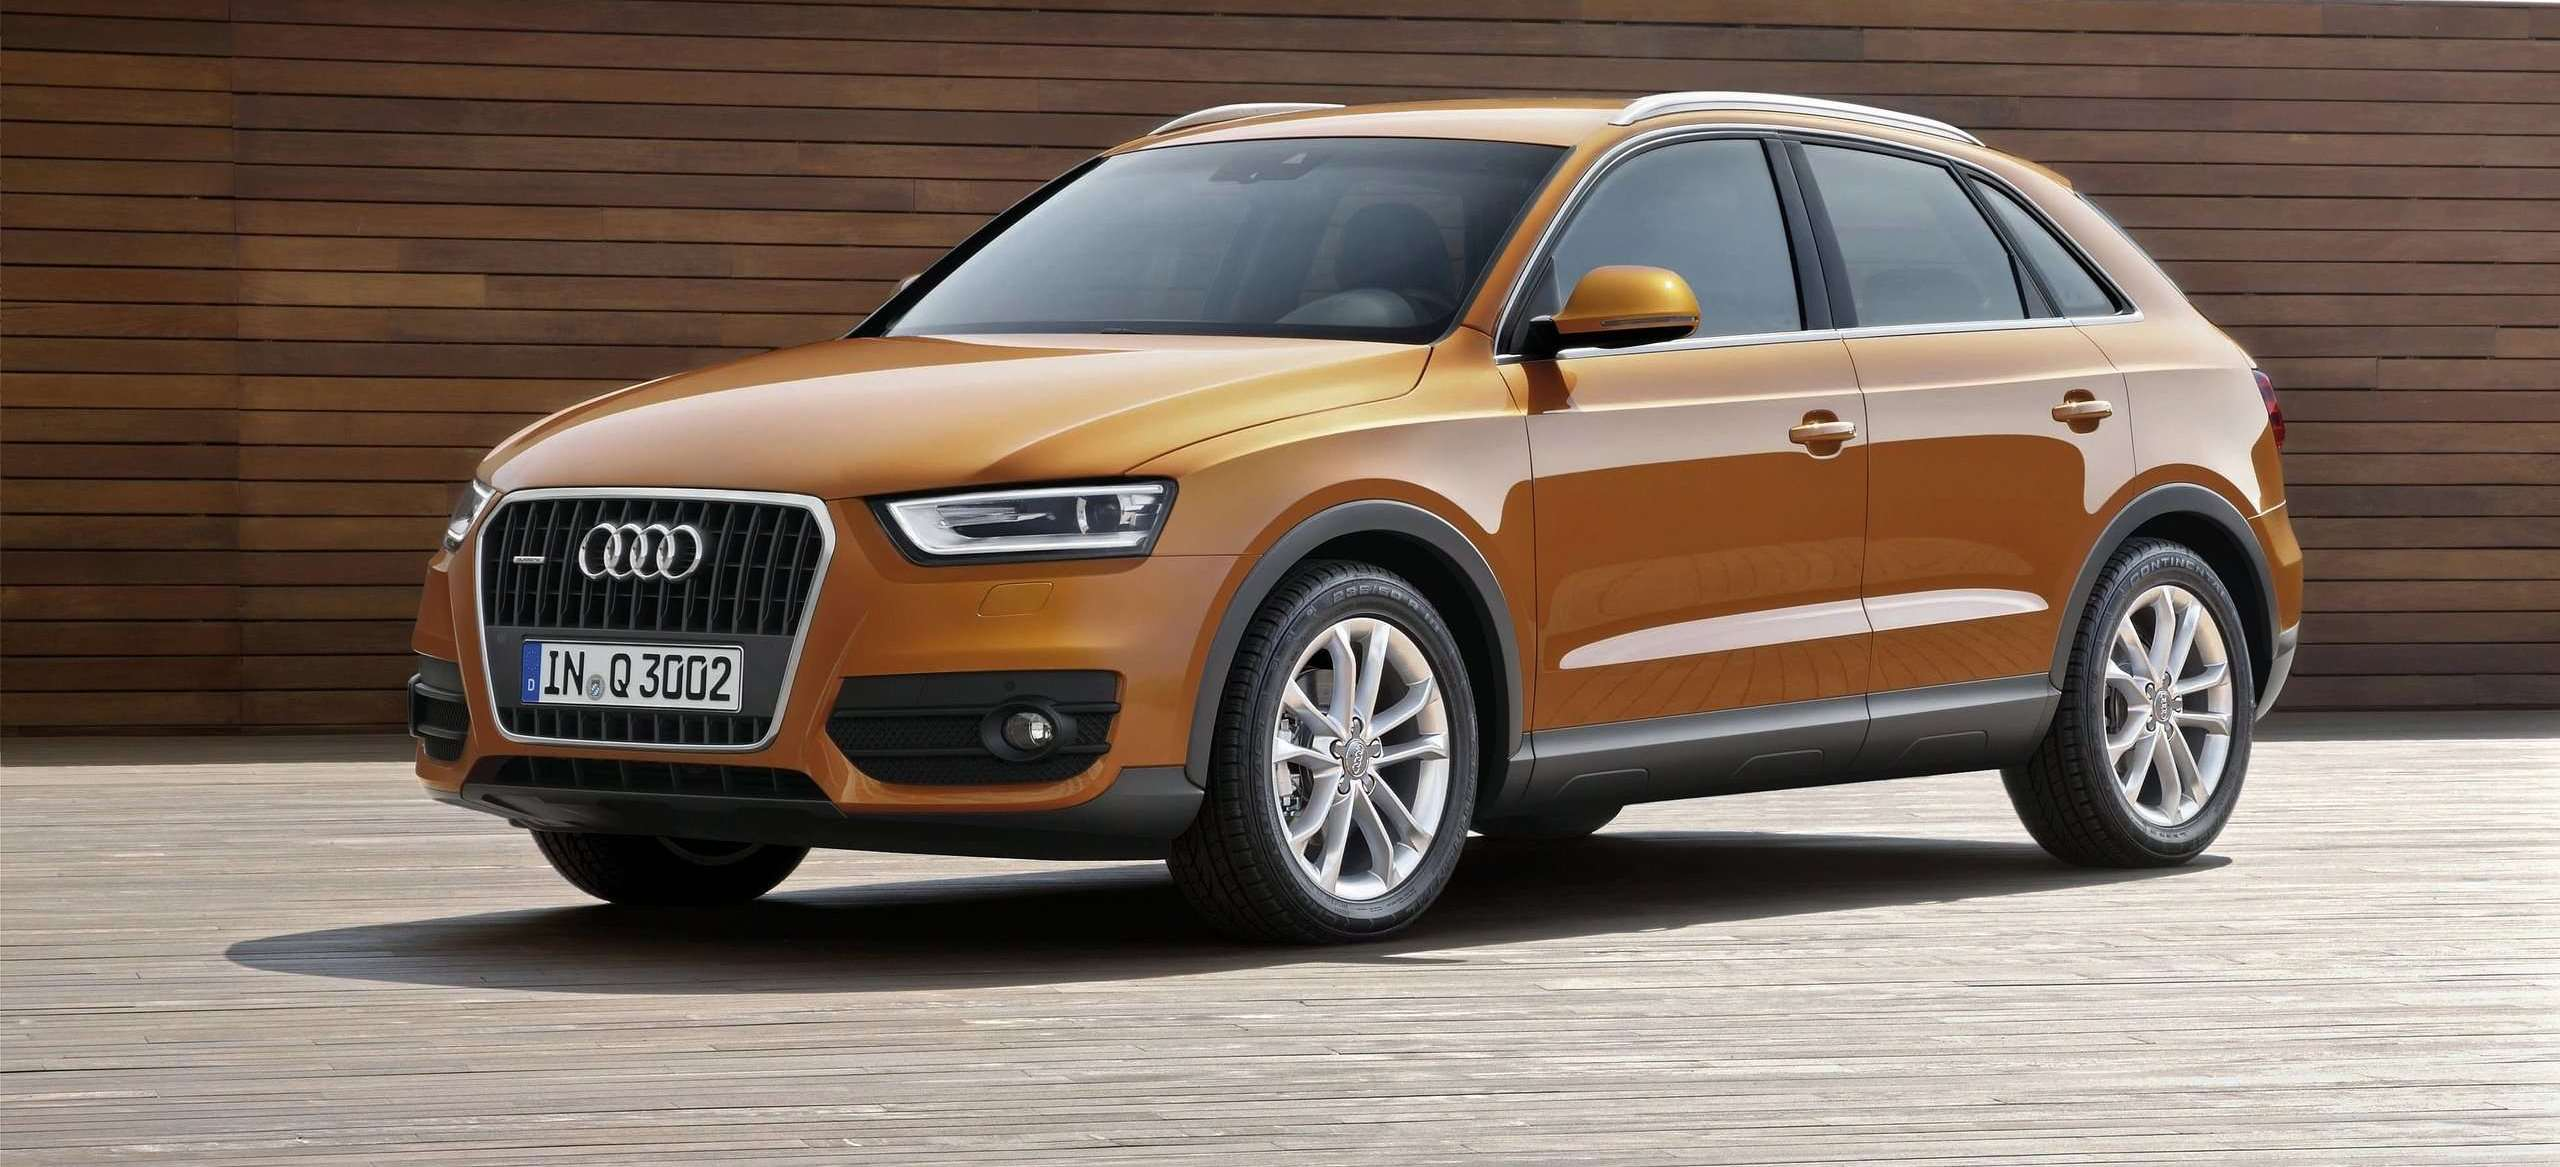 Audi for Sale Near Me Beautiful Audi Q3 2019 Prices In Pakistan & Reviews